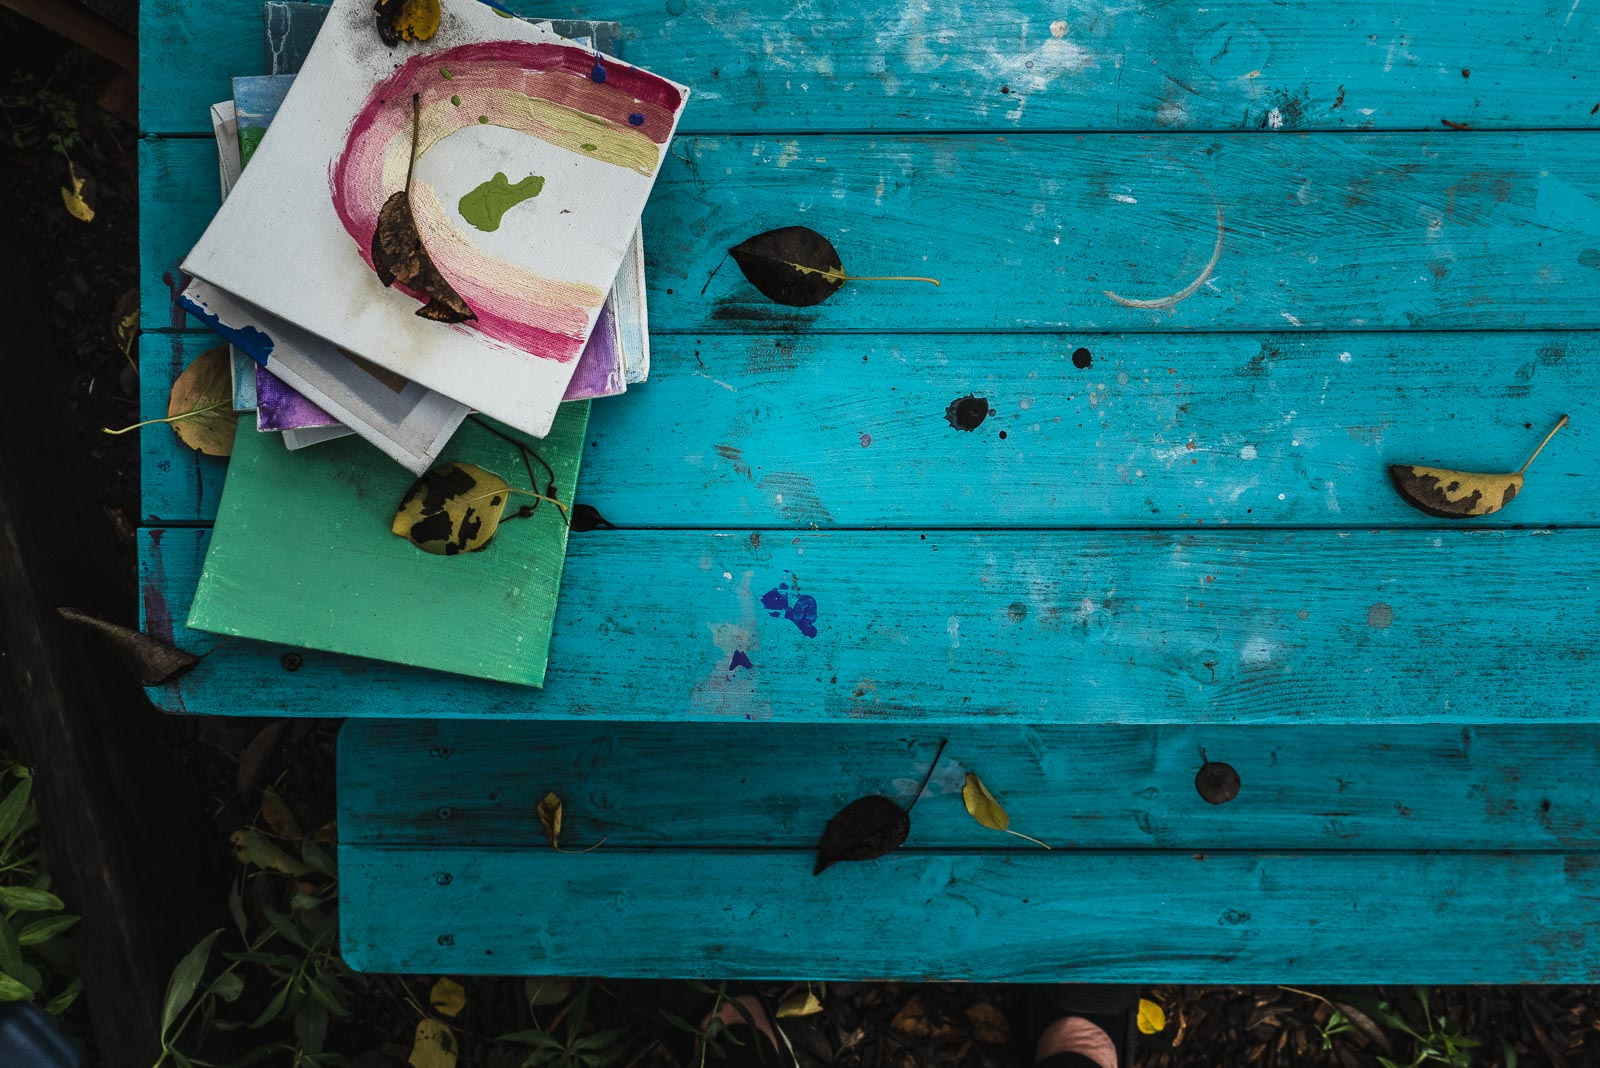 Paintings on a blue picnic table: What's next for the photographer mom?